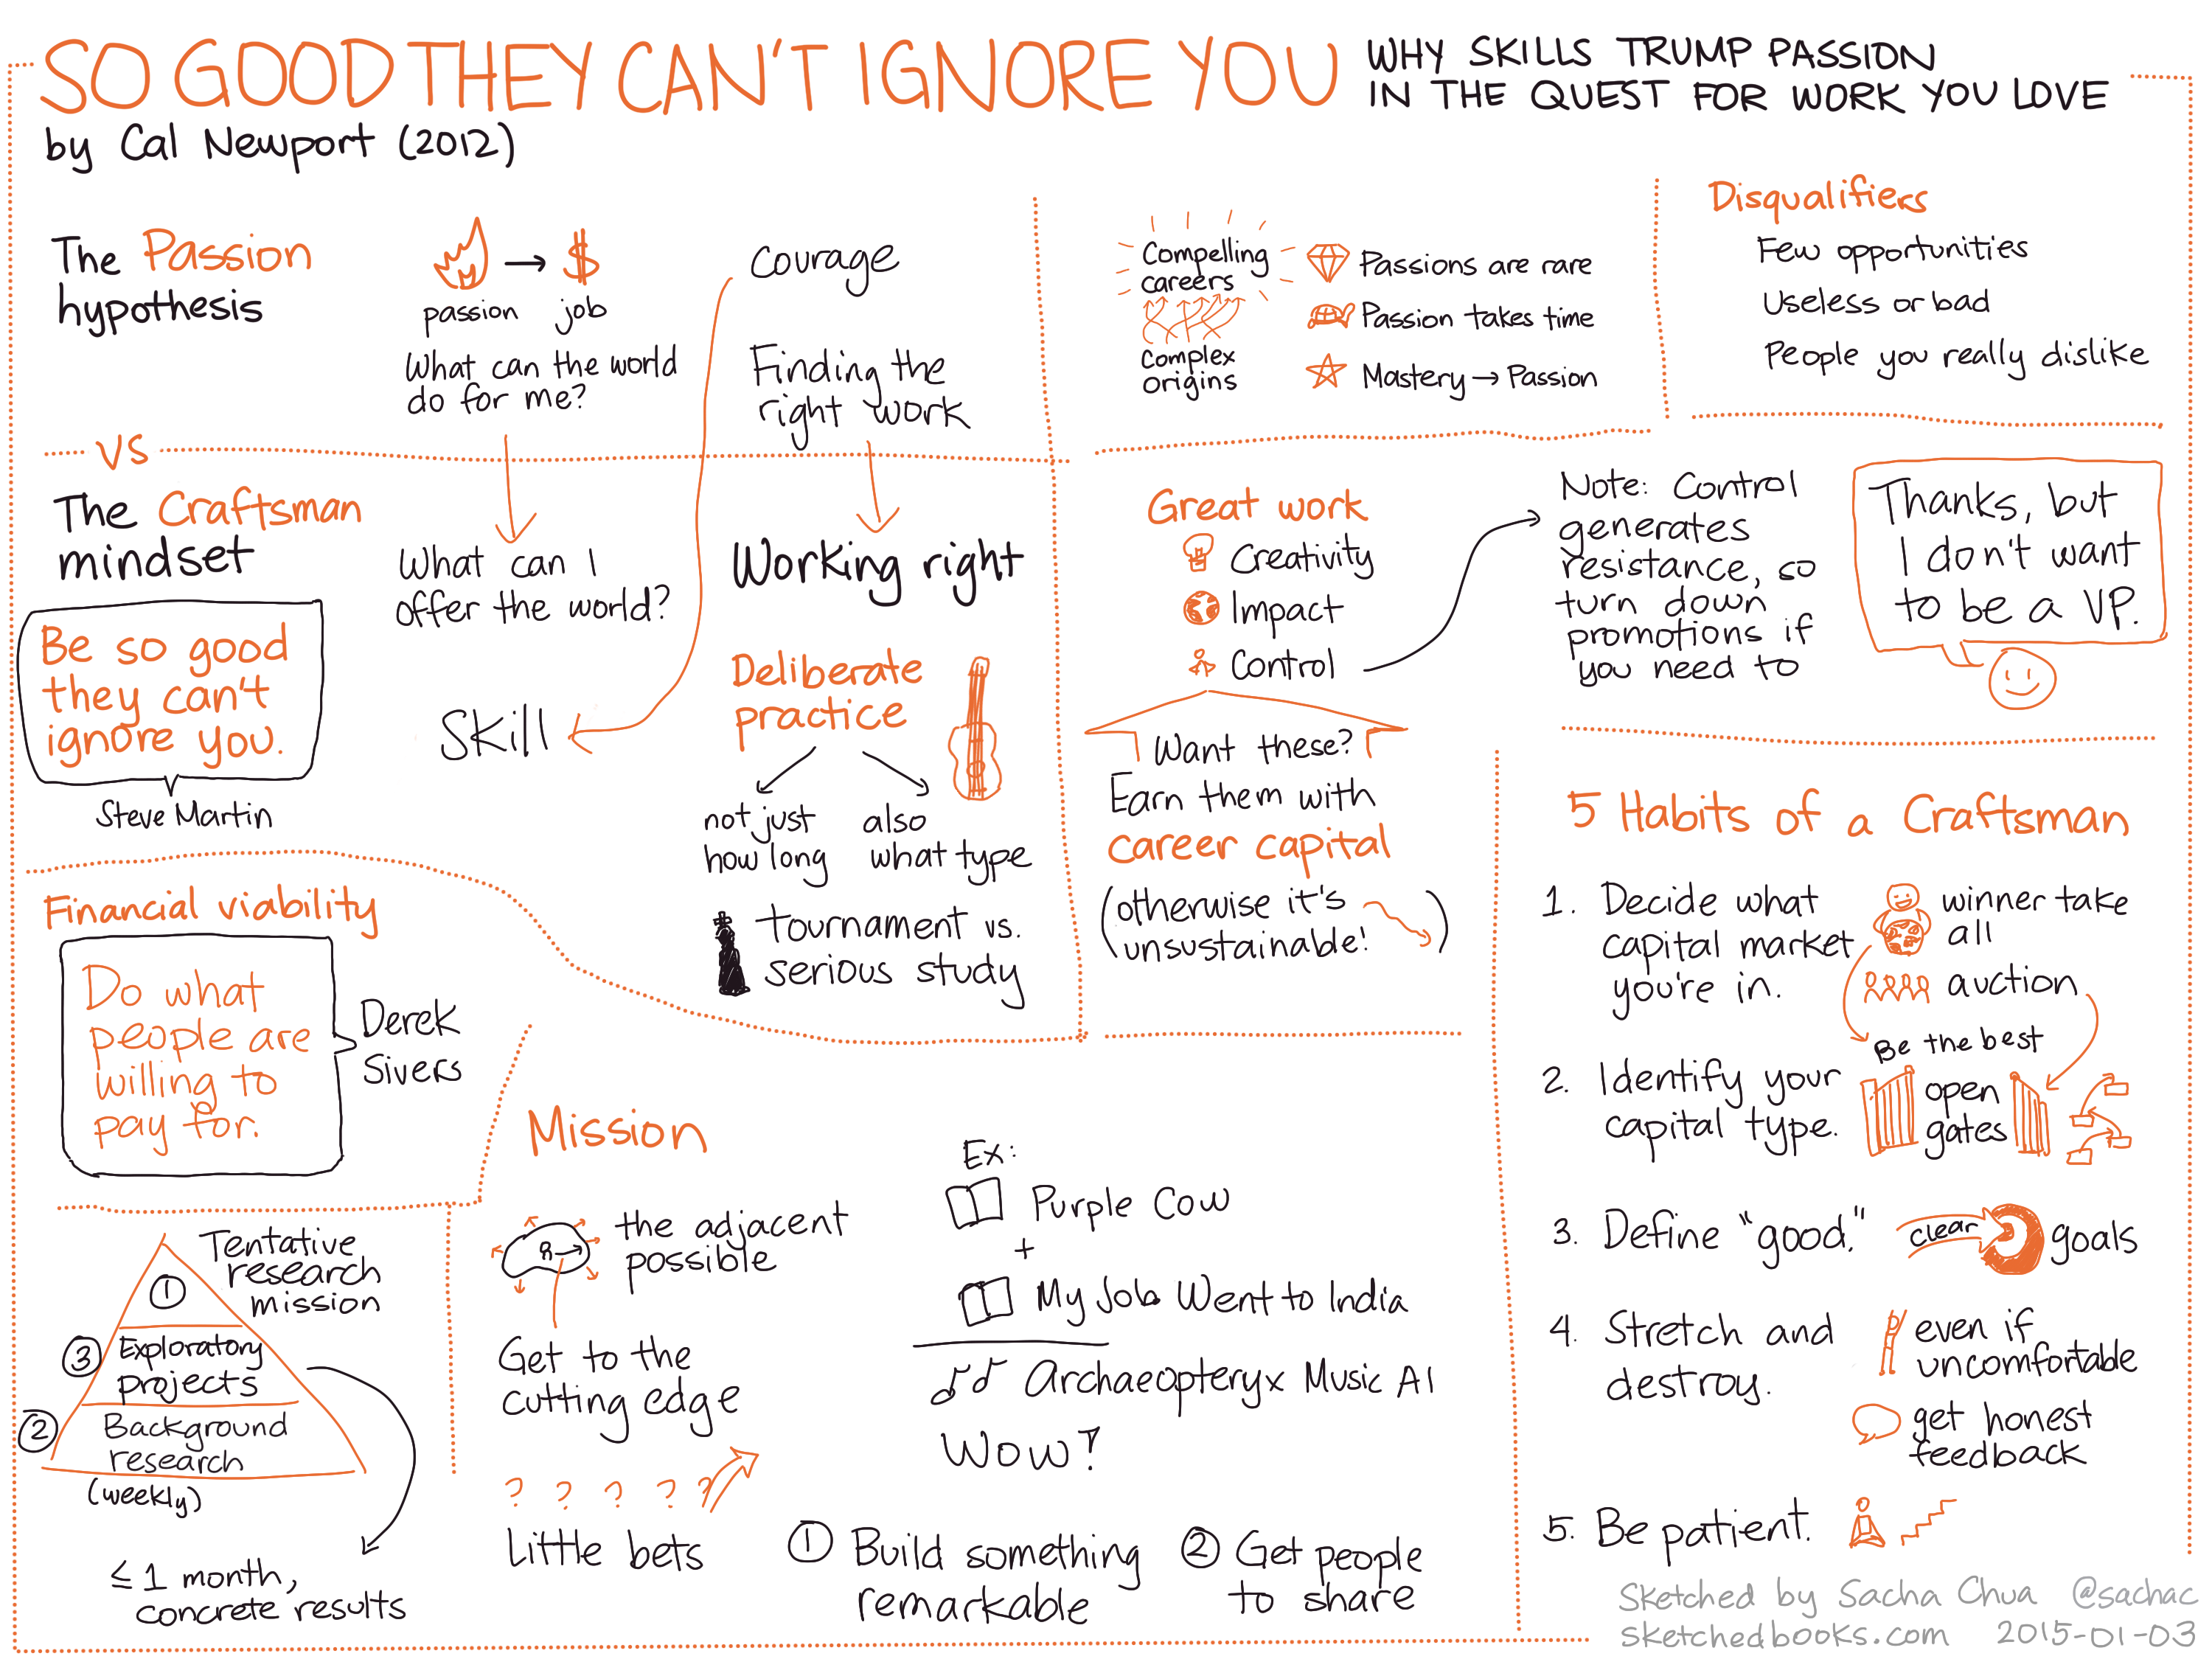 2015-01-03 Sketched Book - So Good They Can't Ignore You